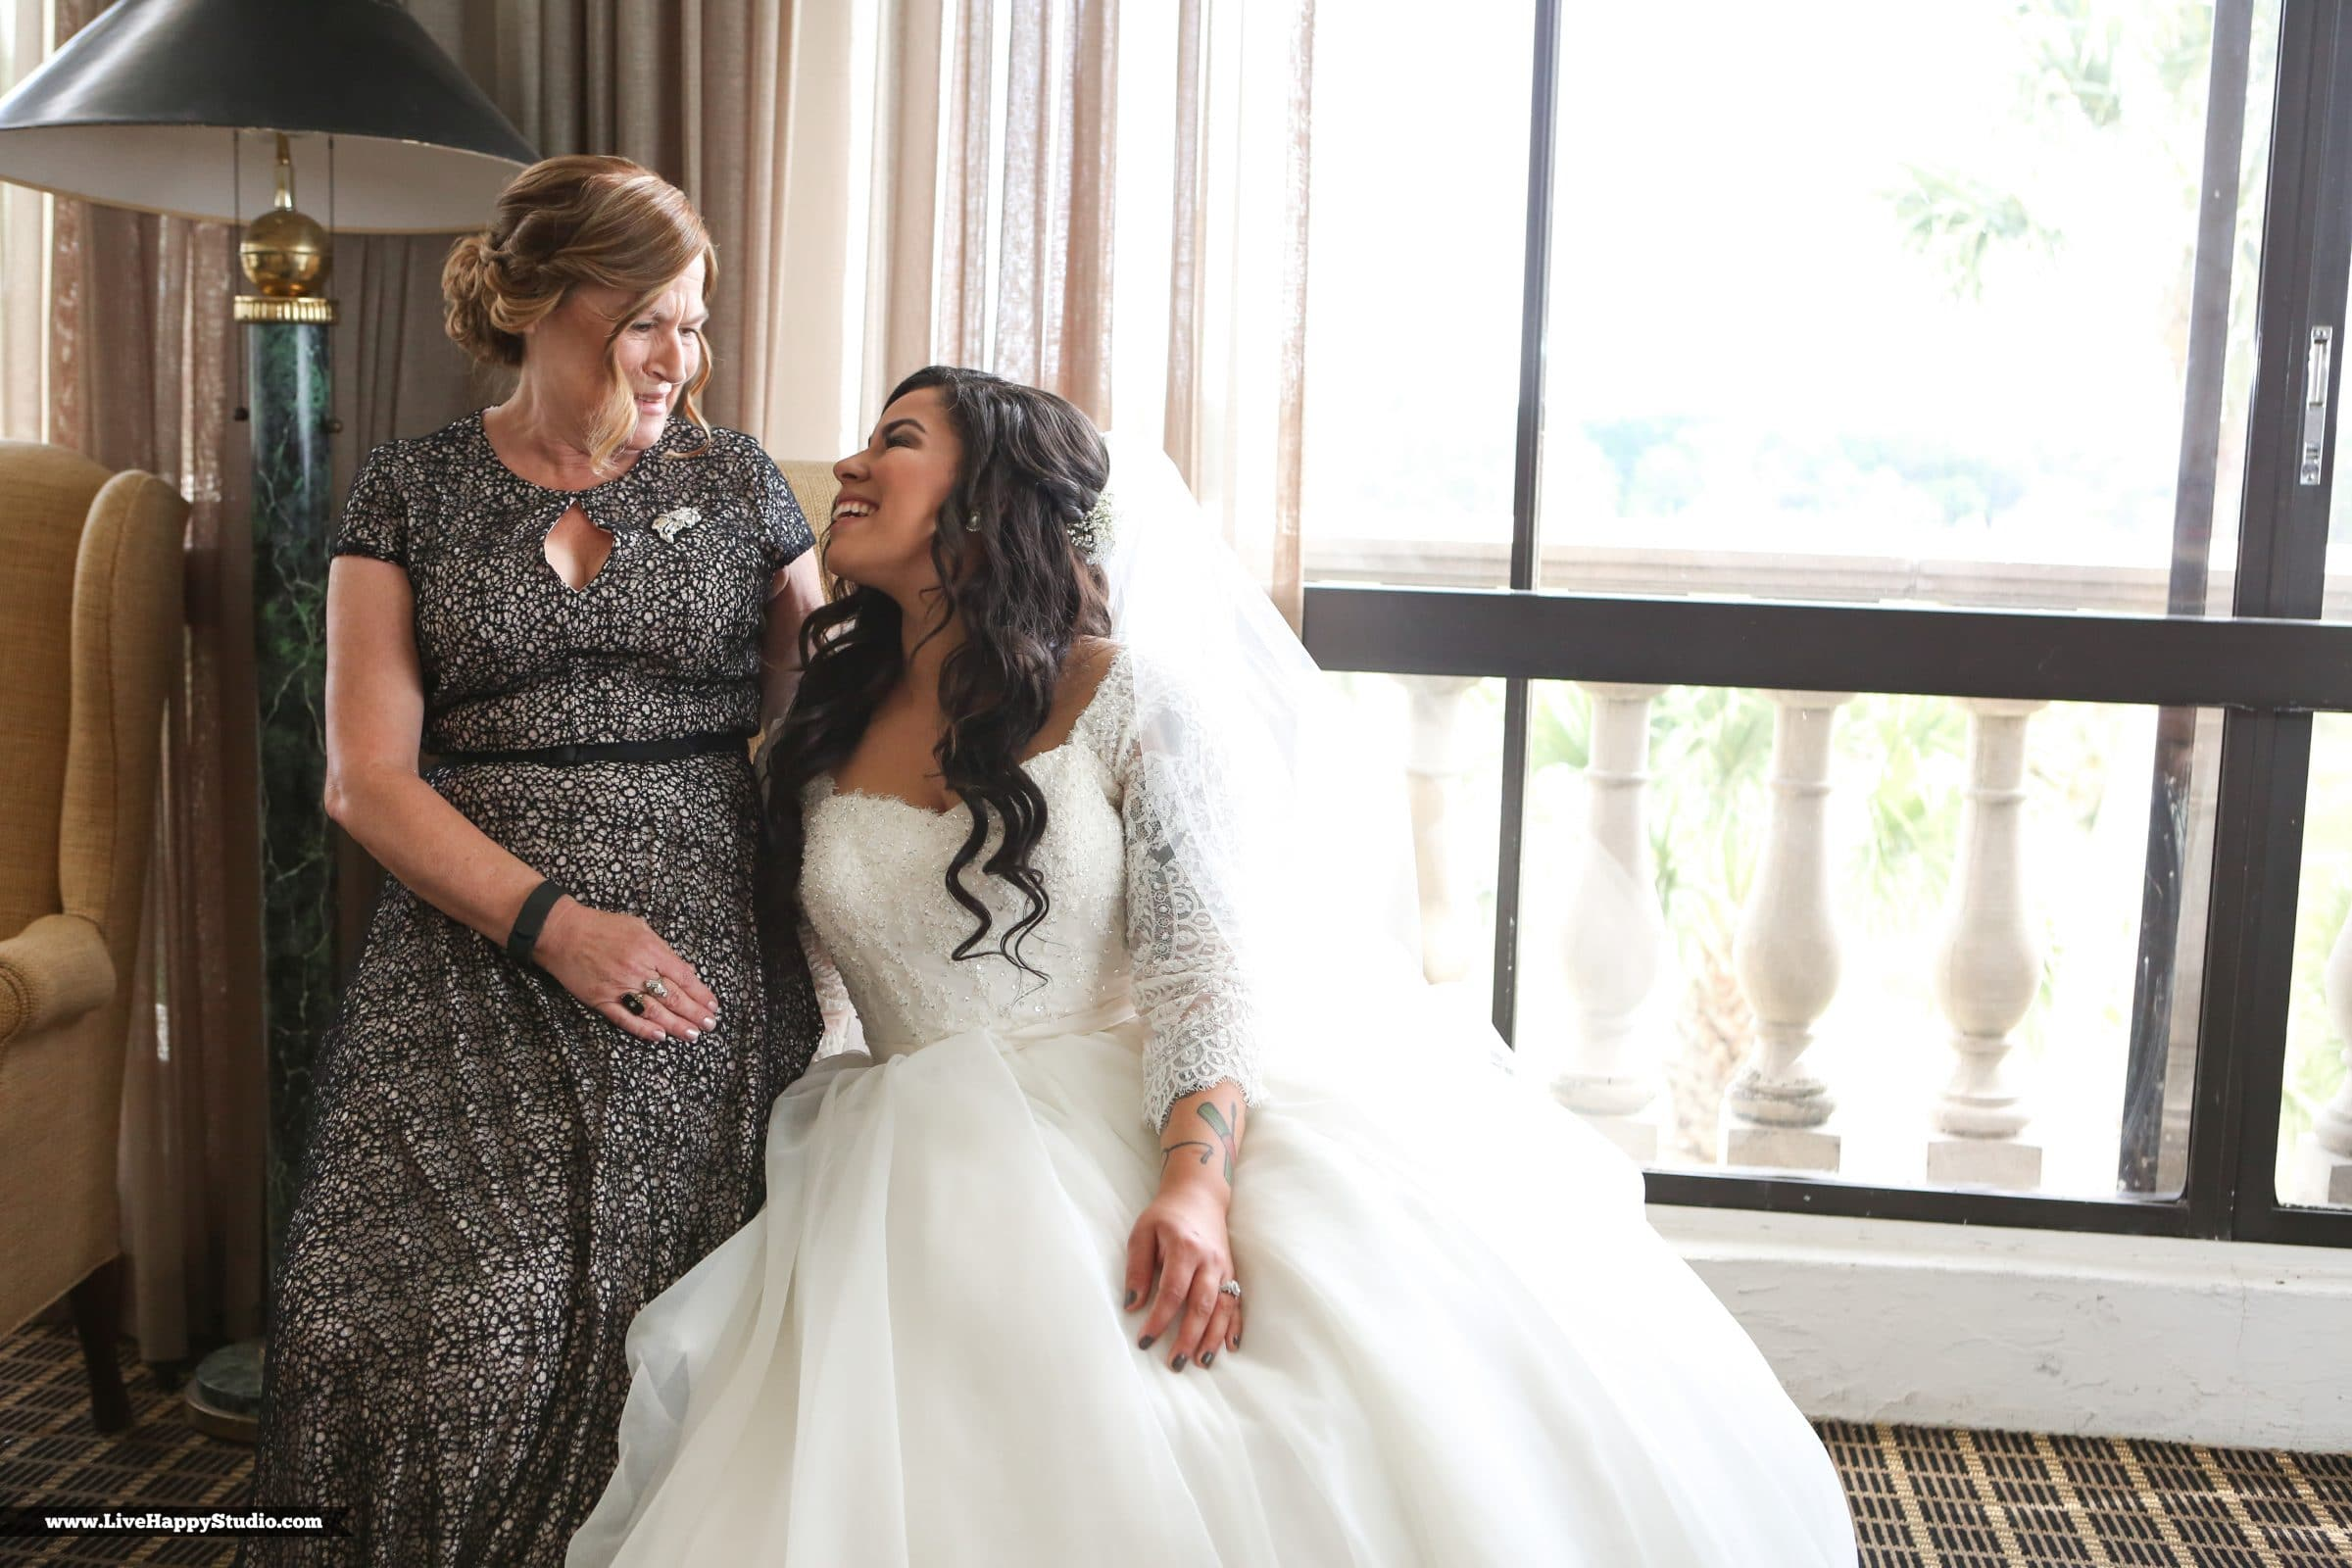 Bride laughing with mother in hotel room